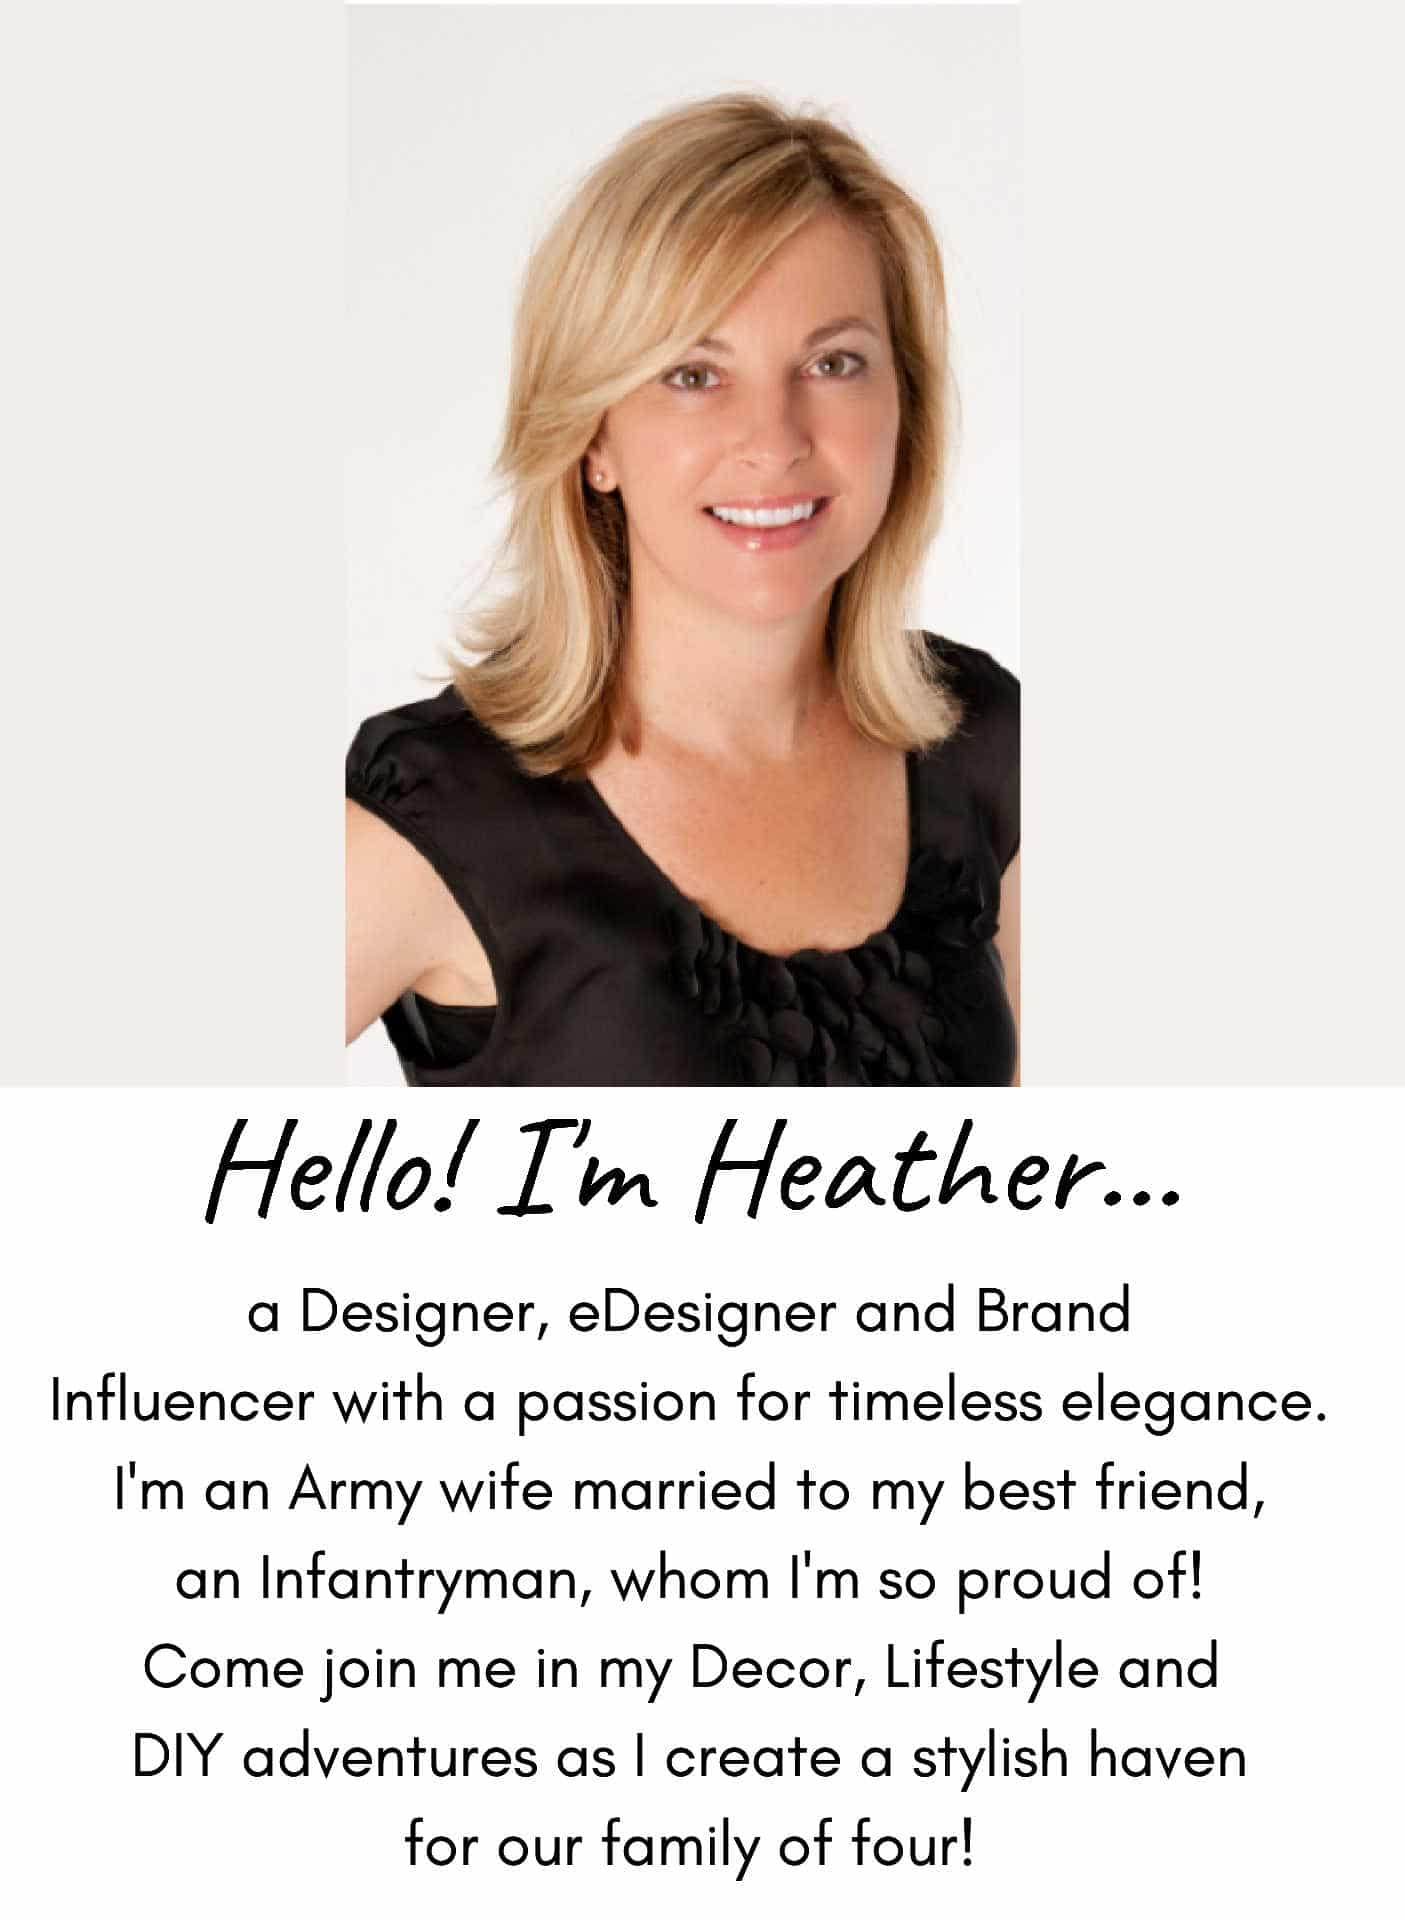 Hello! I'm Heather - Designer and Influencer at SettingforFour.com! Join me in my DIY, Design and Lifestyle Adventures!